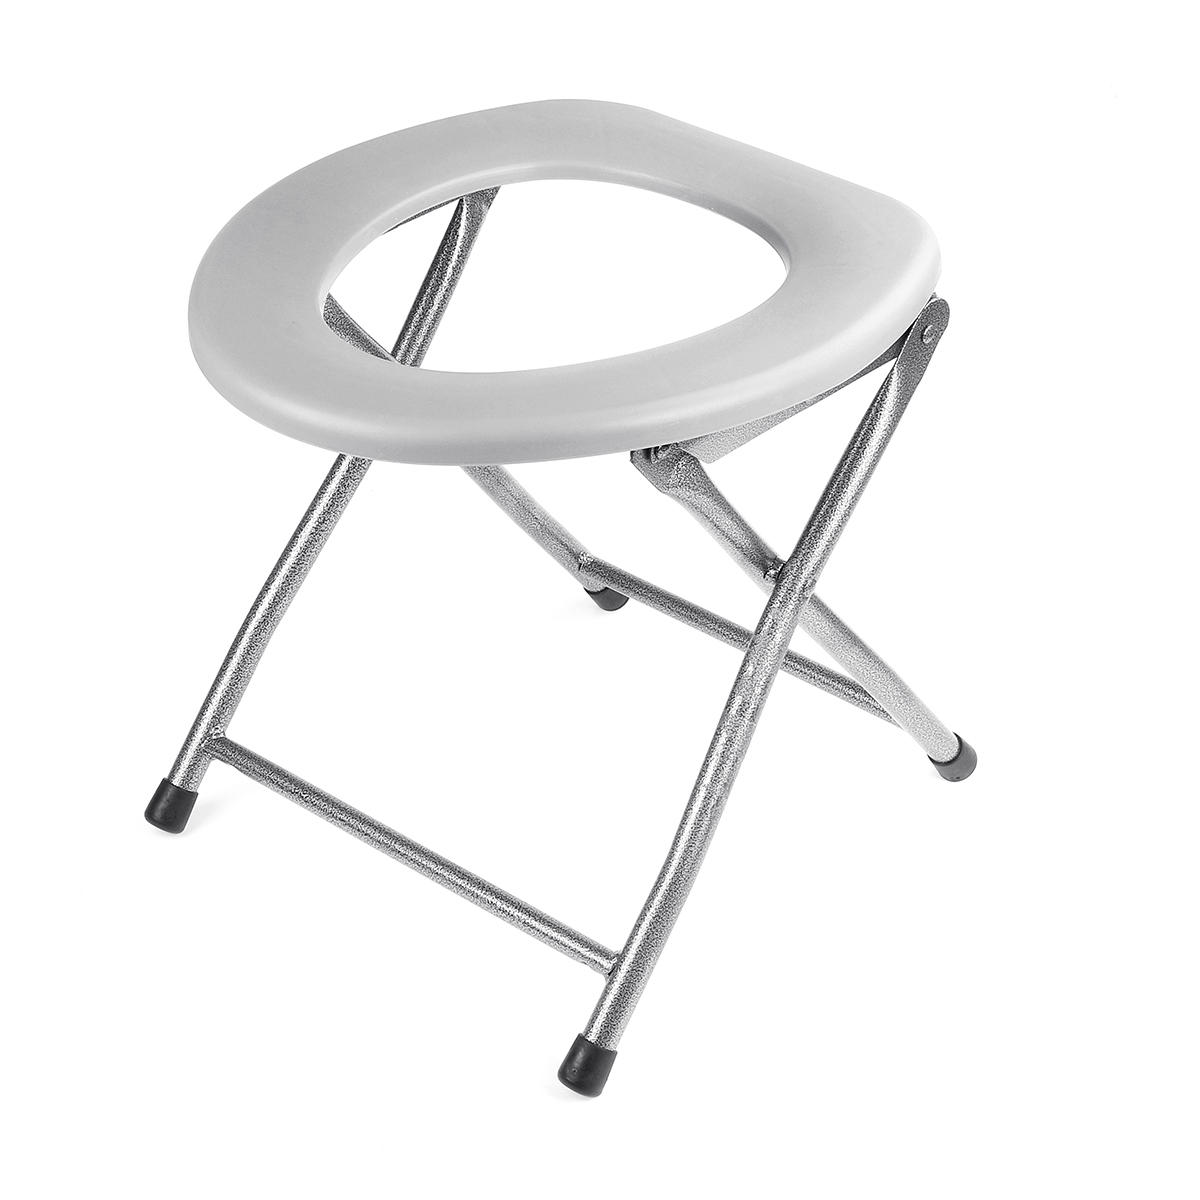 Folding Commode Portable Toilet Seat Porta Potty and Commode Chair - Comfort Chair Perfect for Camping, Hiking, Trips, Construction Sites